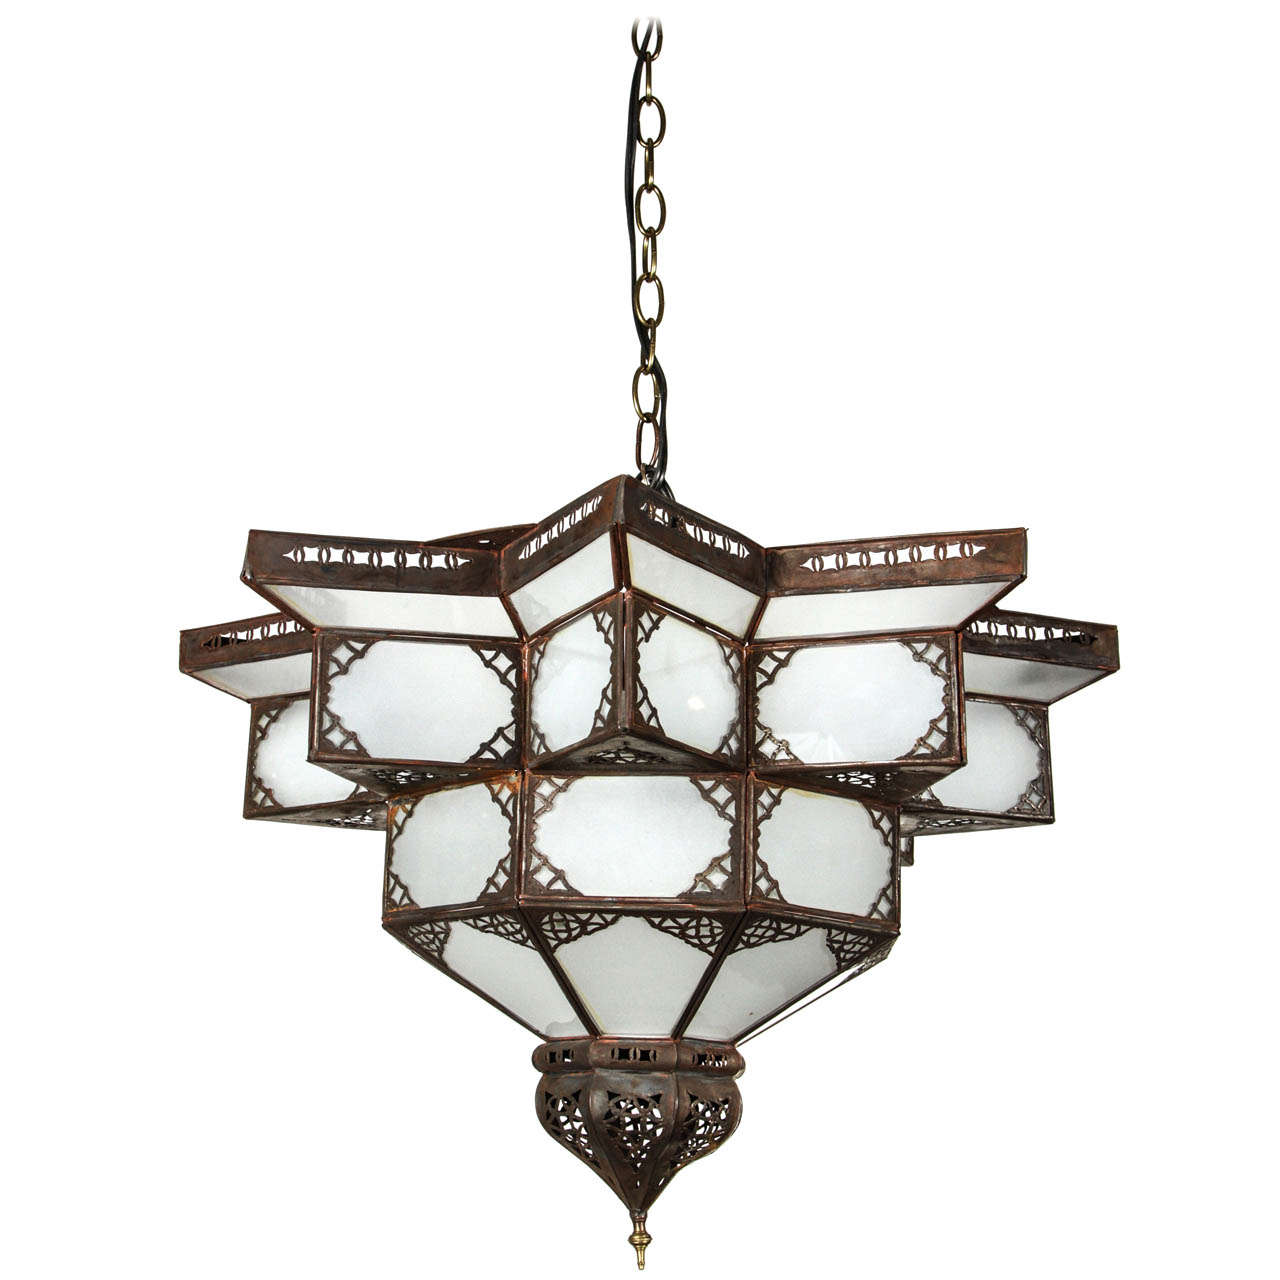 Moroccan star shape frosted glass chandelier at 1stdibs - Moorish chandelier ...